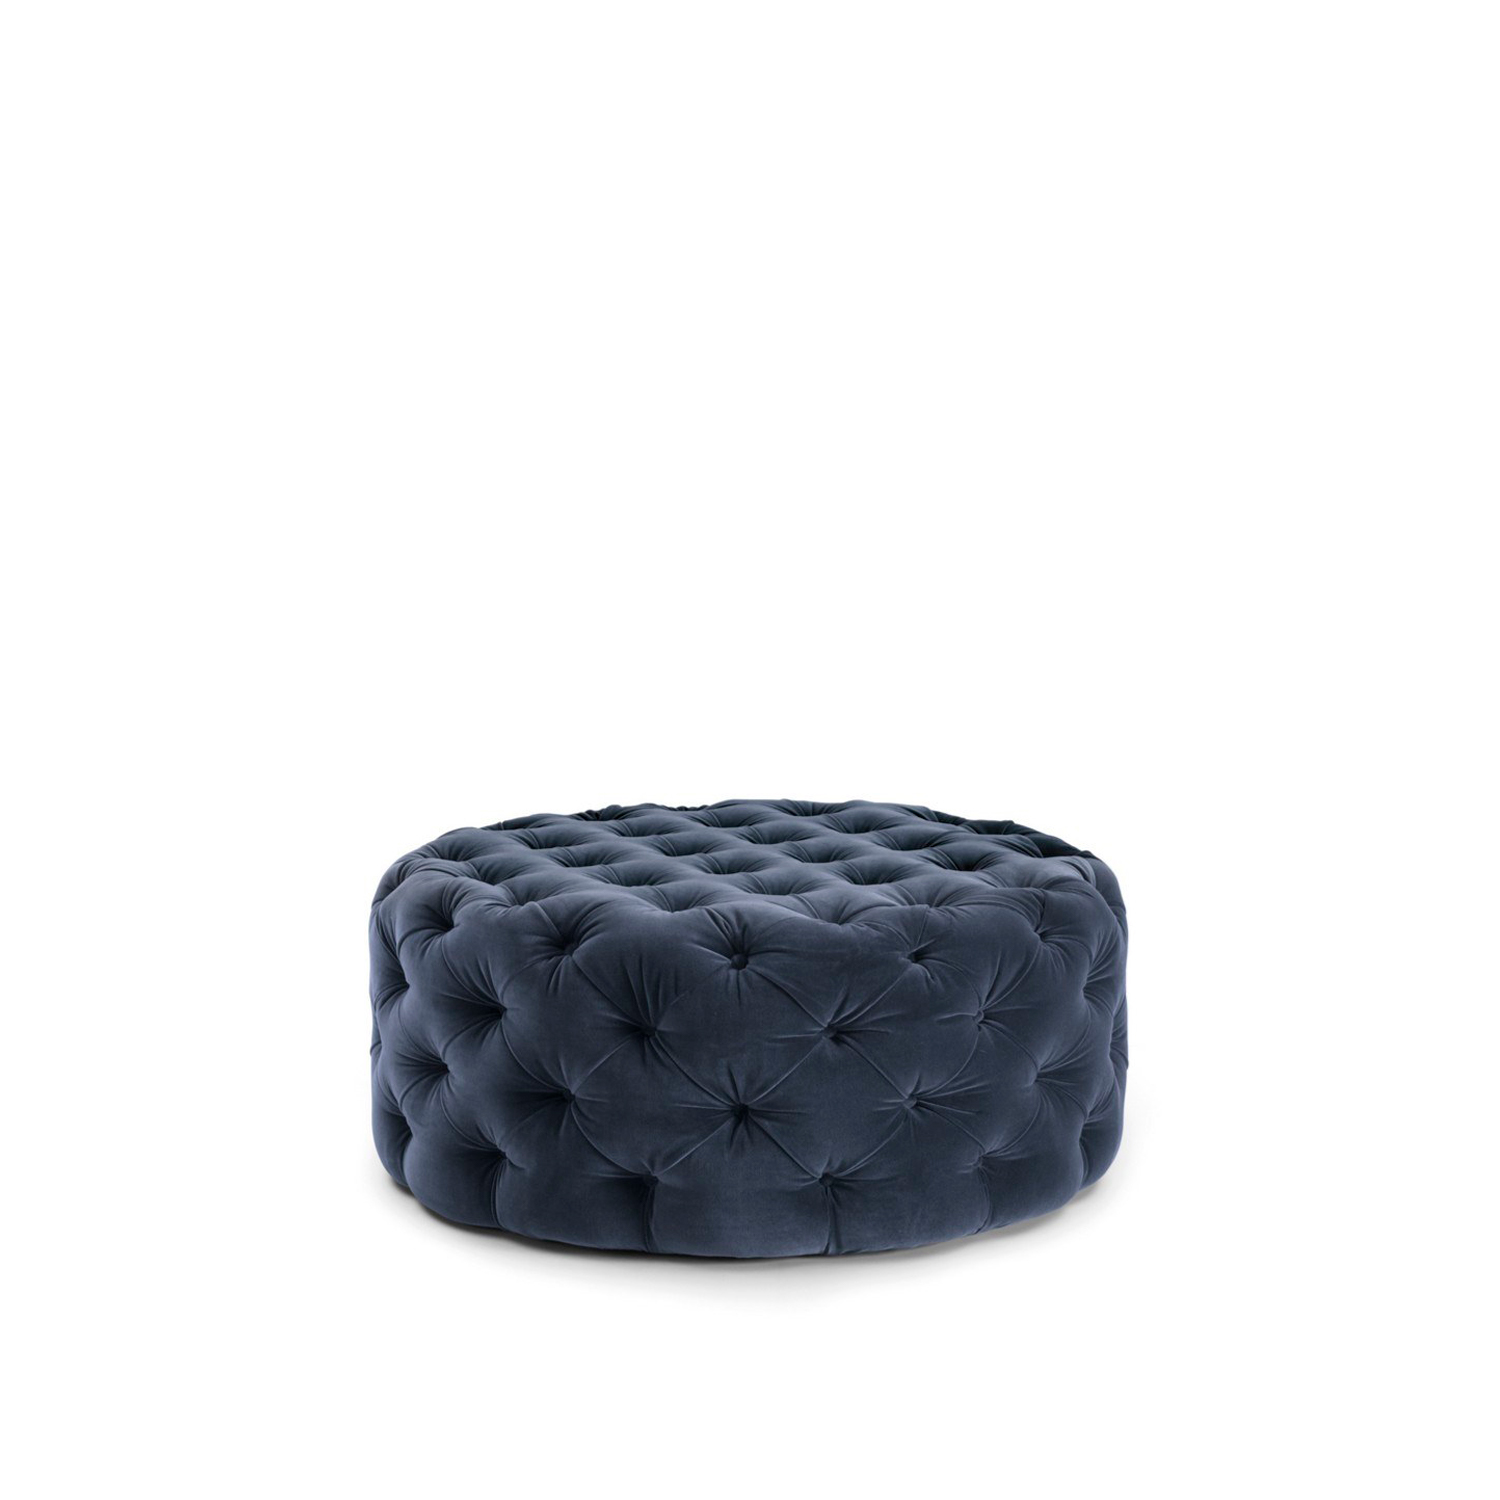 Selene Pouf - Circular pouf that perfectly matches the Selene bed; they share the soft and elegant aspect given by the craftsmanship of the refined capitonné padding. | Matter of Stuff